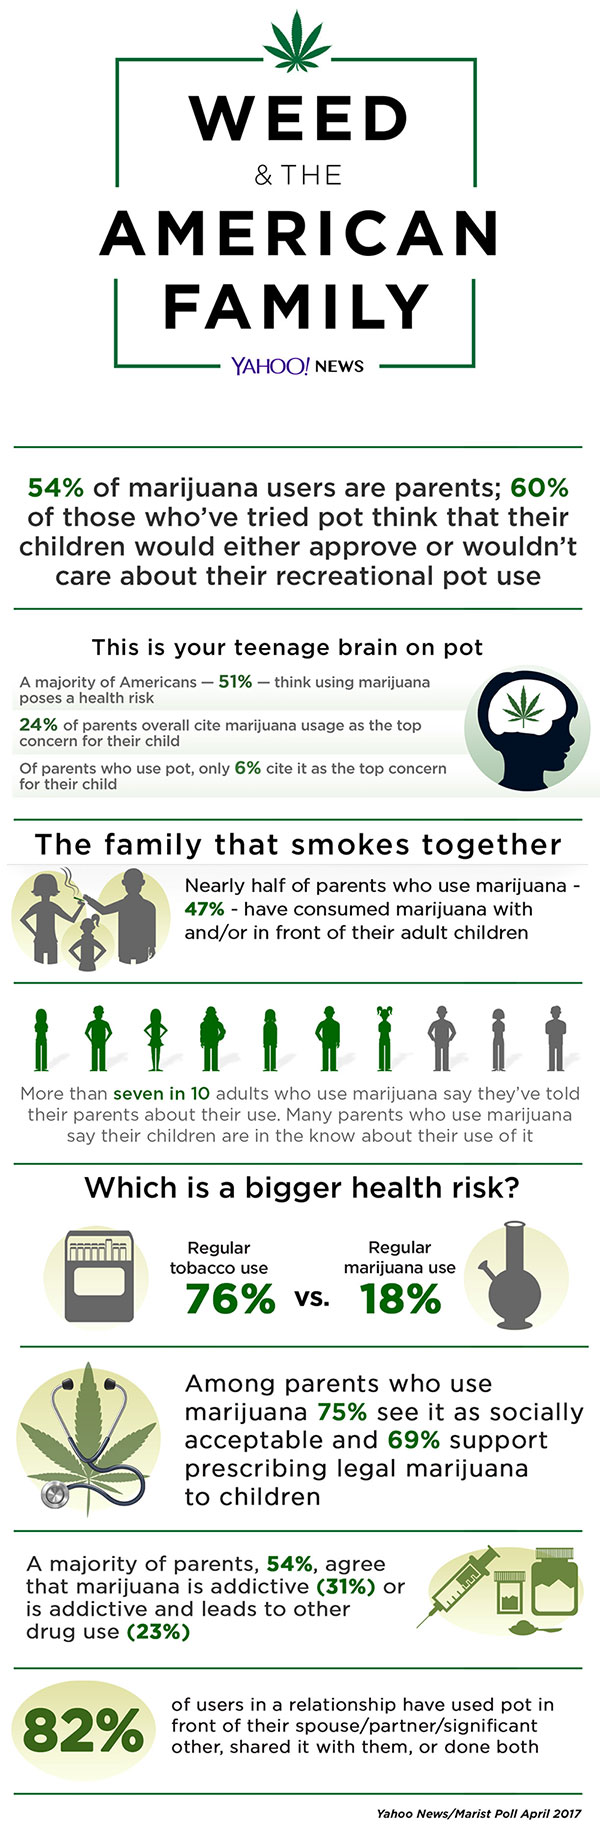 Interesting American Statistics On Weed Usage - Infographic